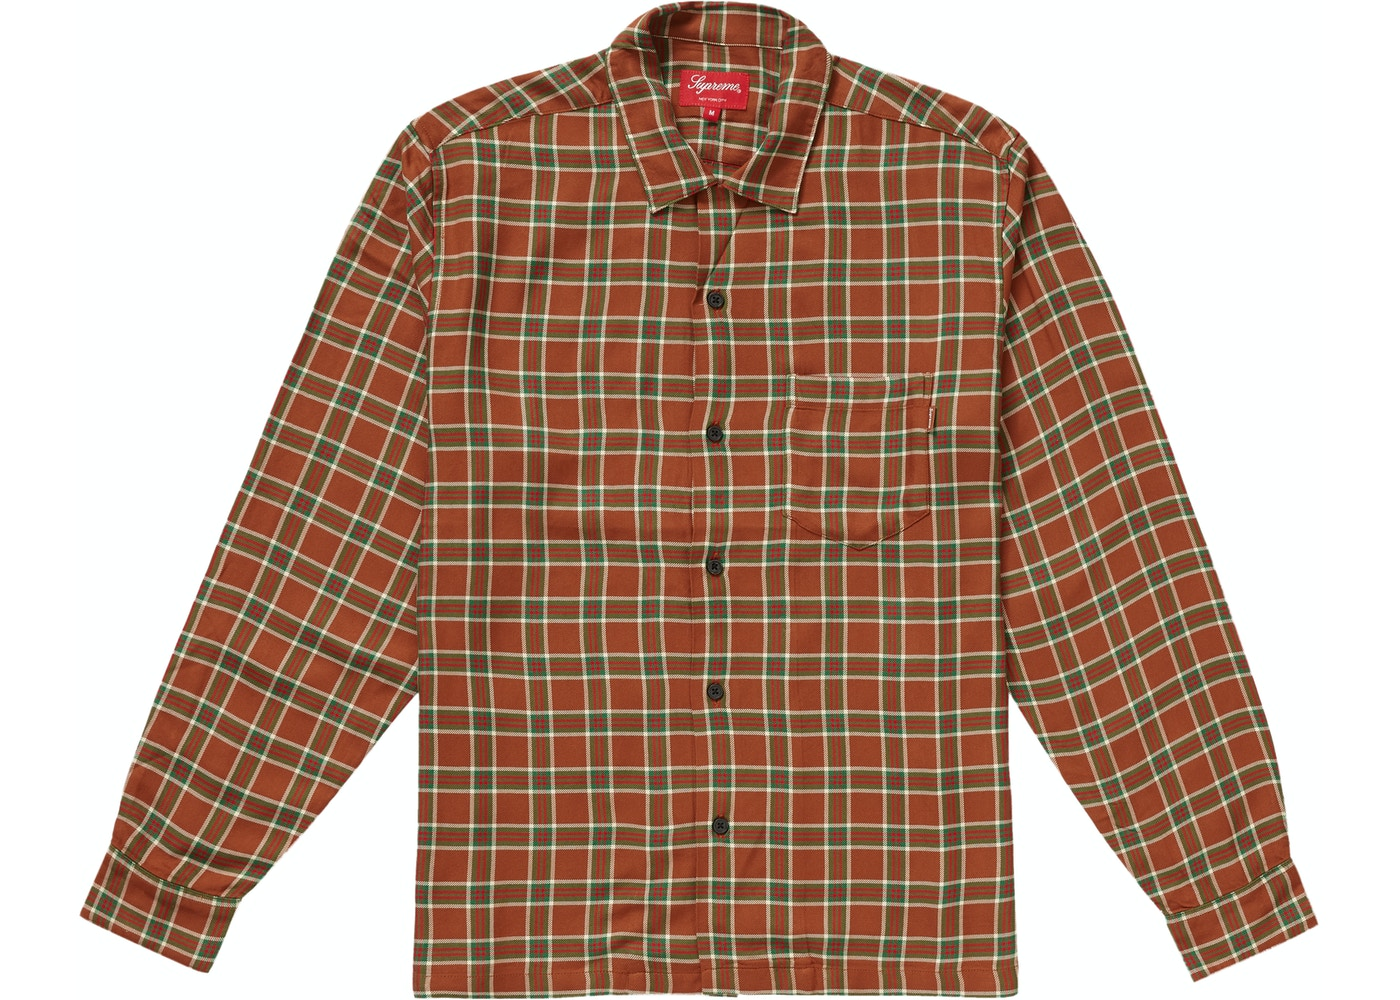 625b223c Streetwear - Supreme Shirts - Lowest Ask